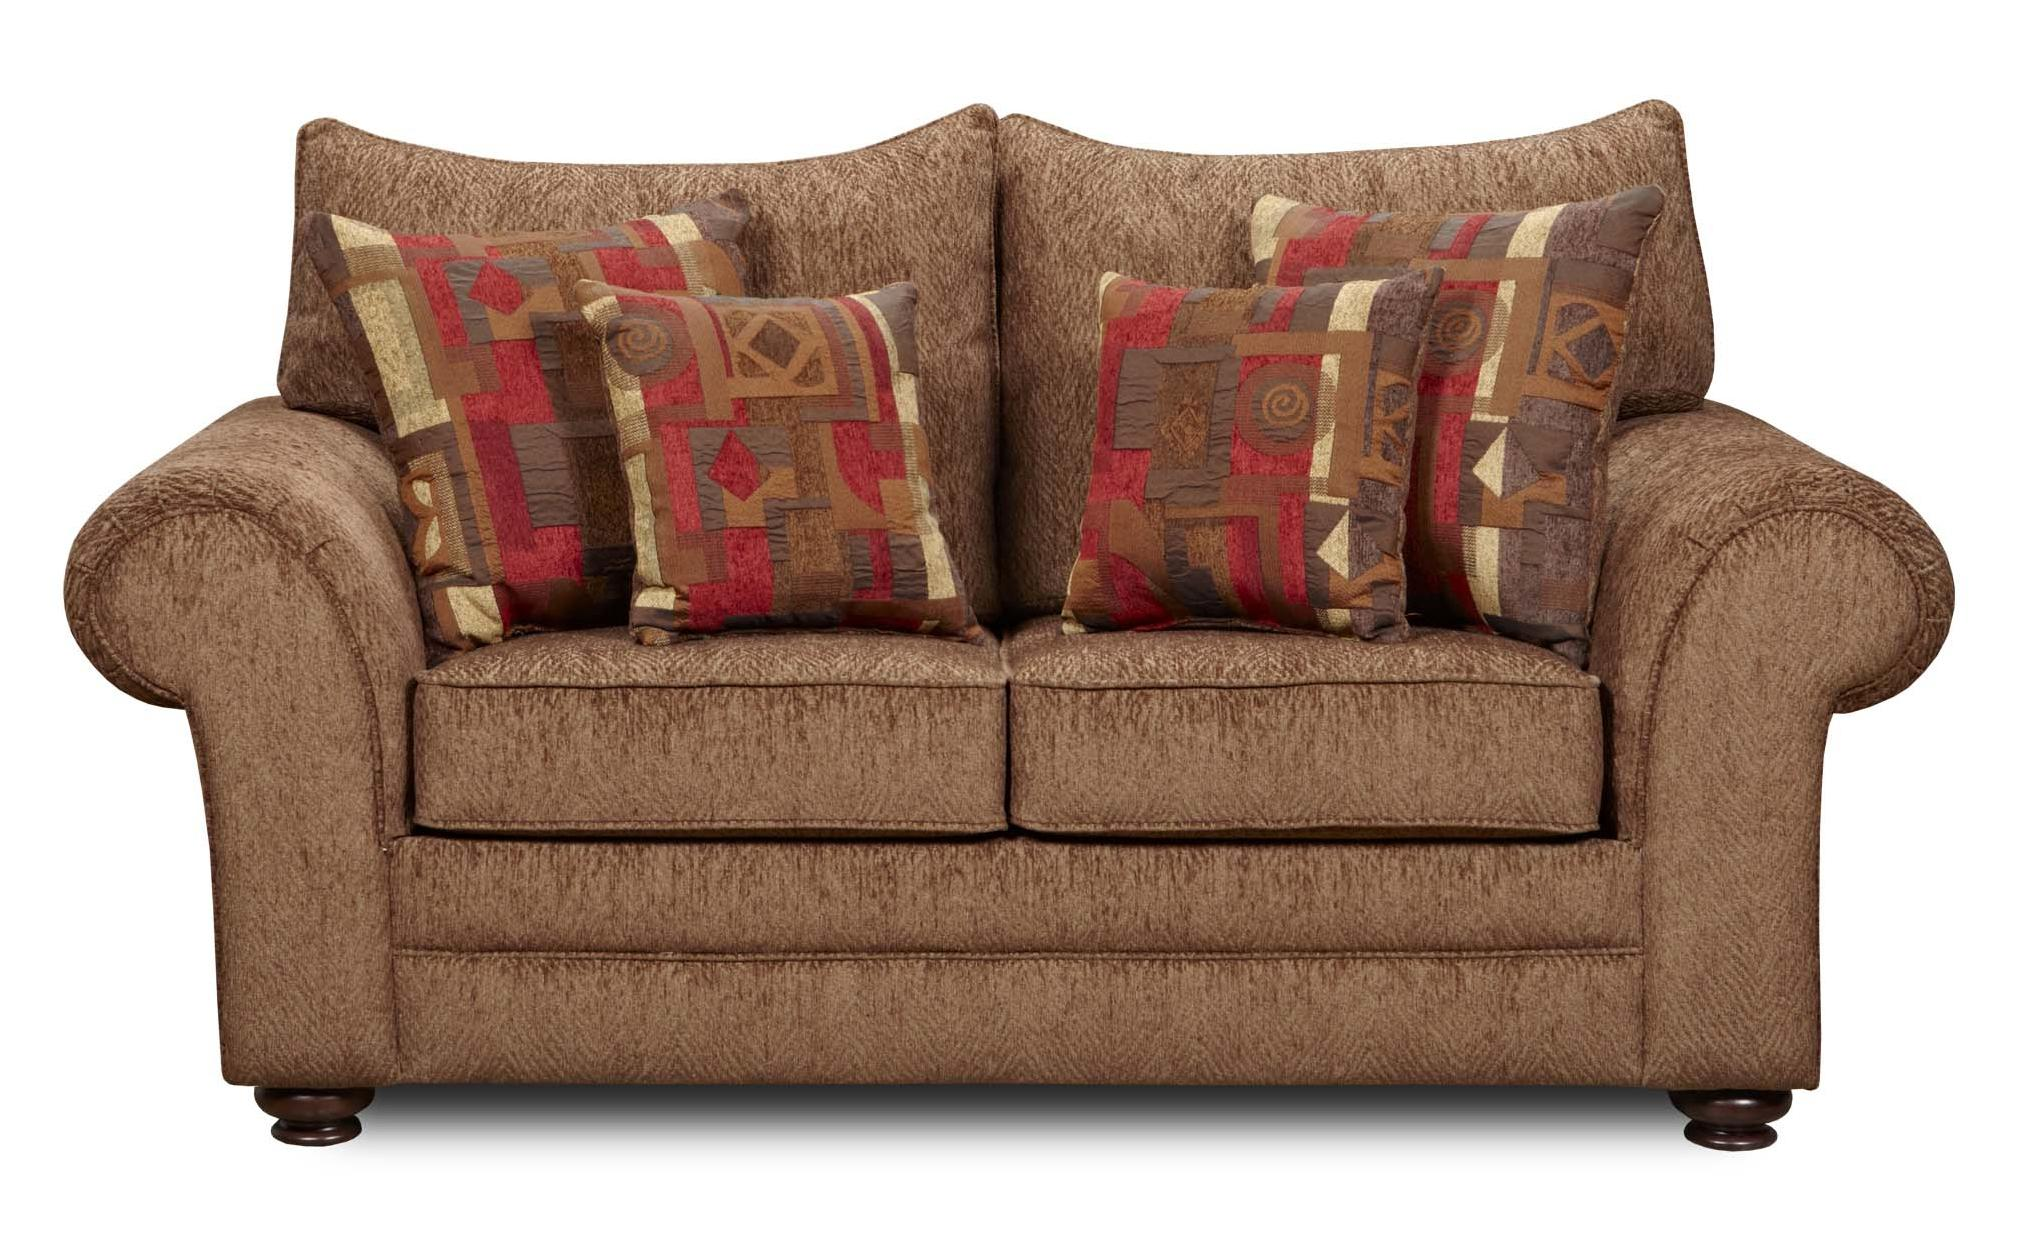 1120 Love Seat by Washington Furniture at Lynn's Furniture & Mattress